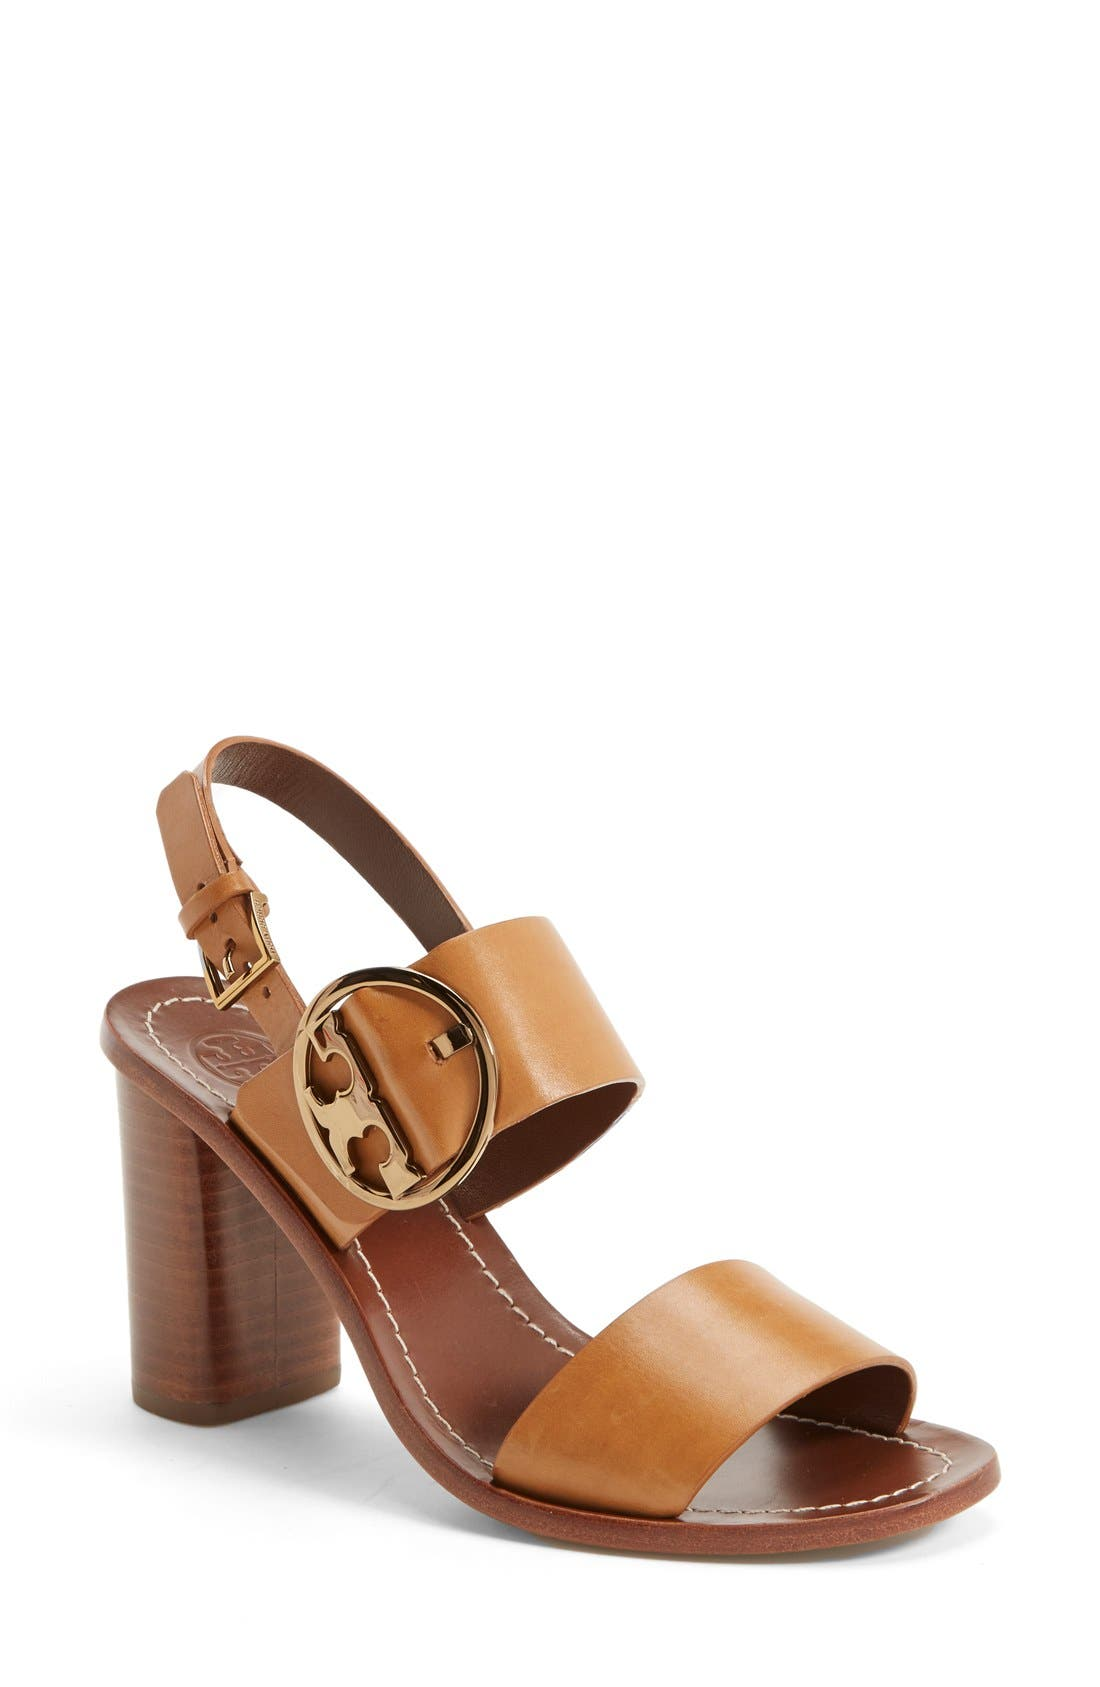 Alternate Image 1 Selected - Tory Burch 'Thames' Sandal (Women)